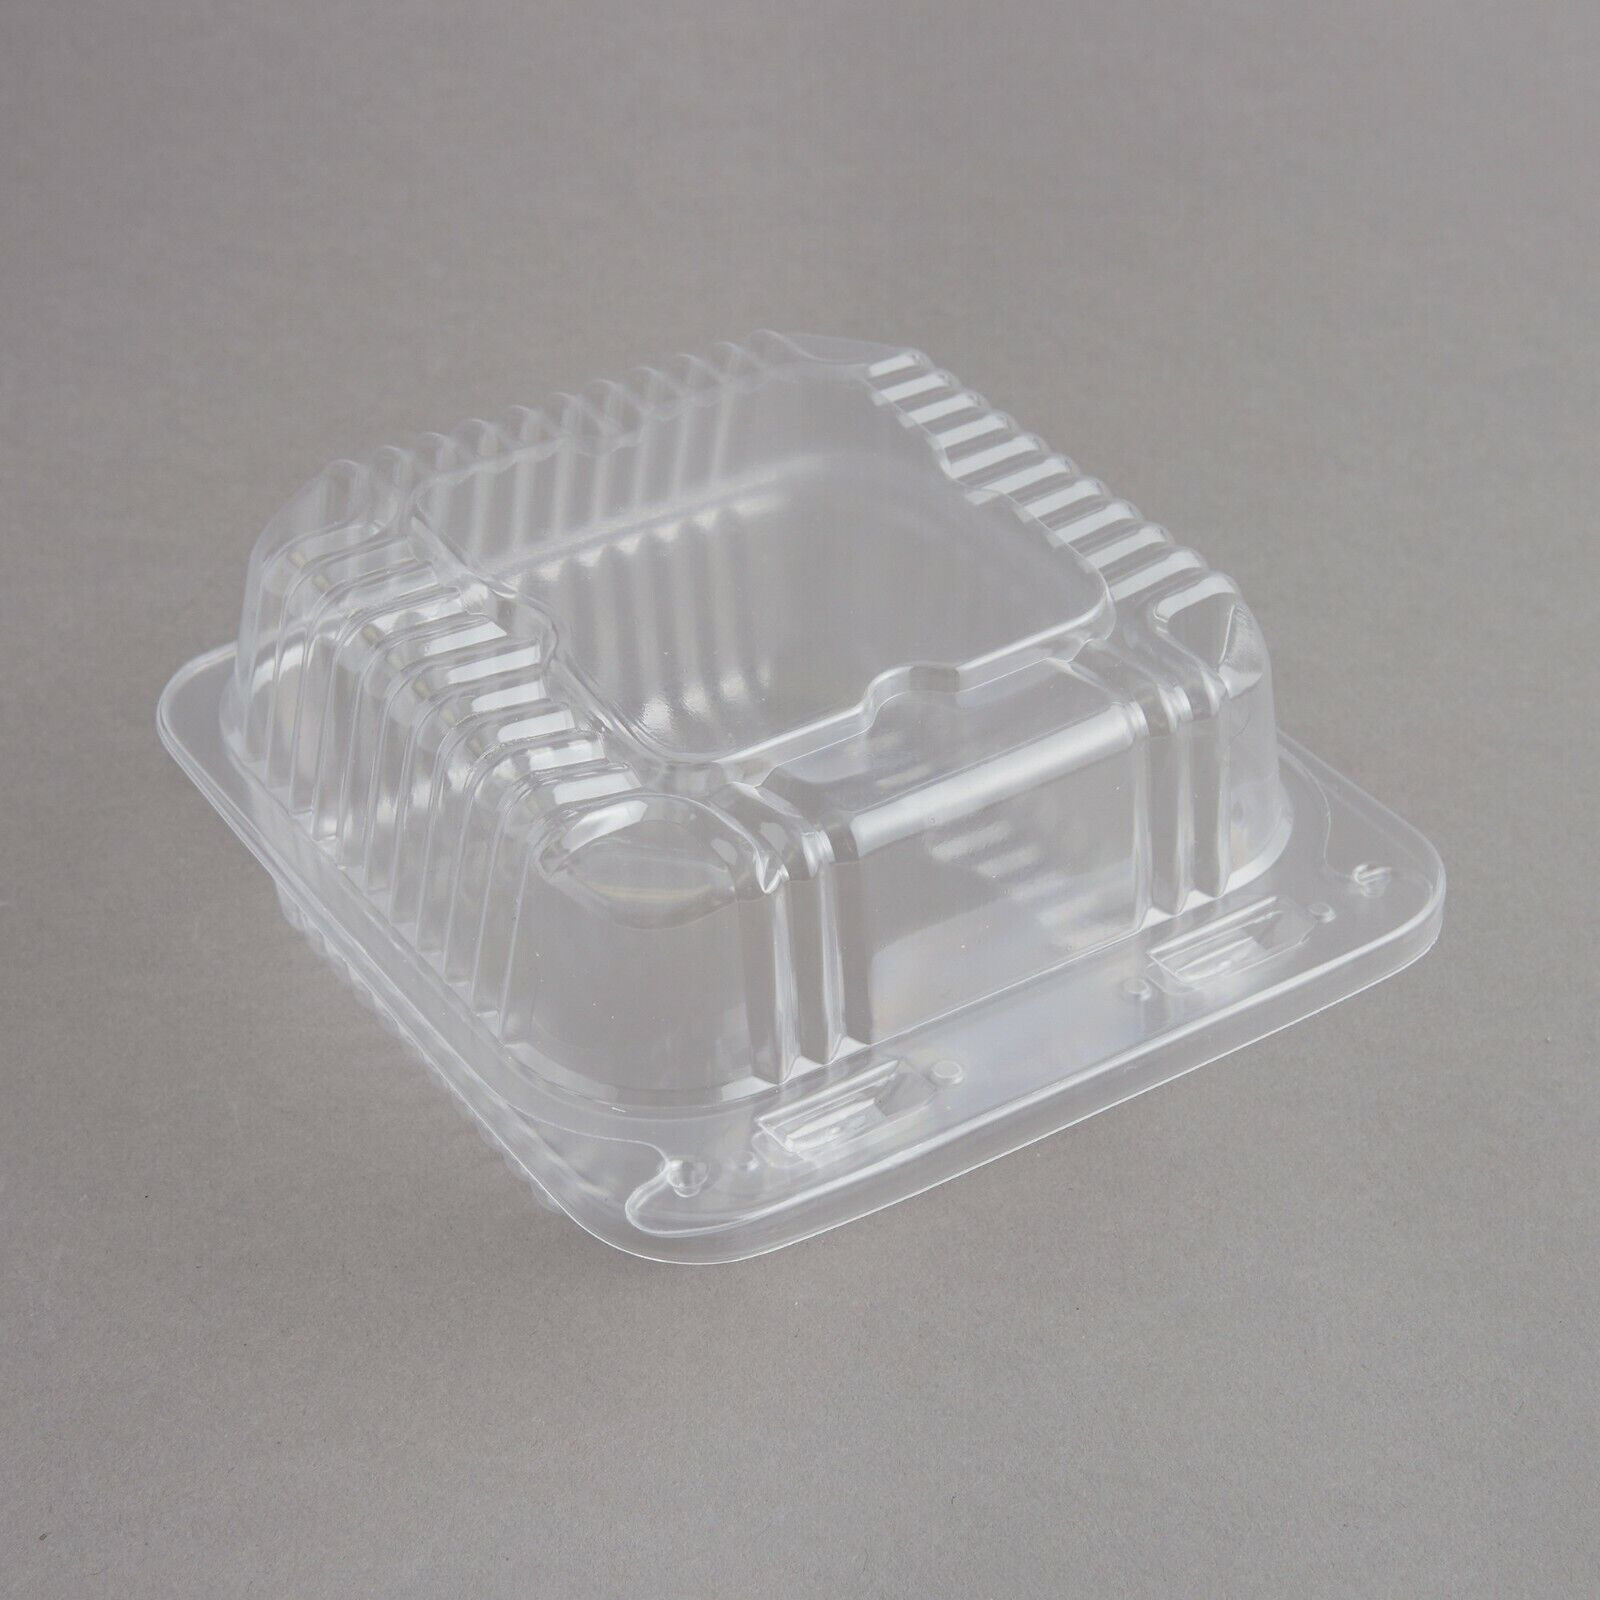 SafePro 8x8x3 Clear Hinged Lid Plastic Container, Polyethylene Terephthalate Square Cold Clamshell Container CASE OF 250